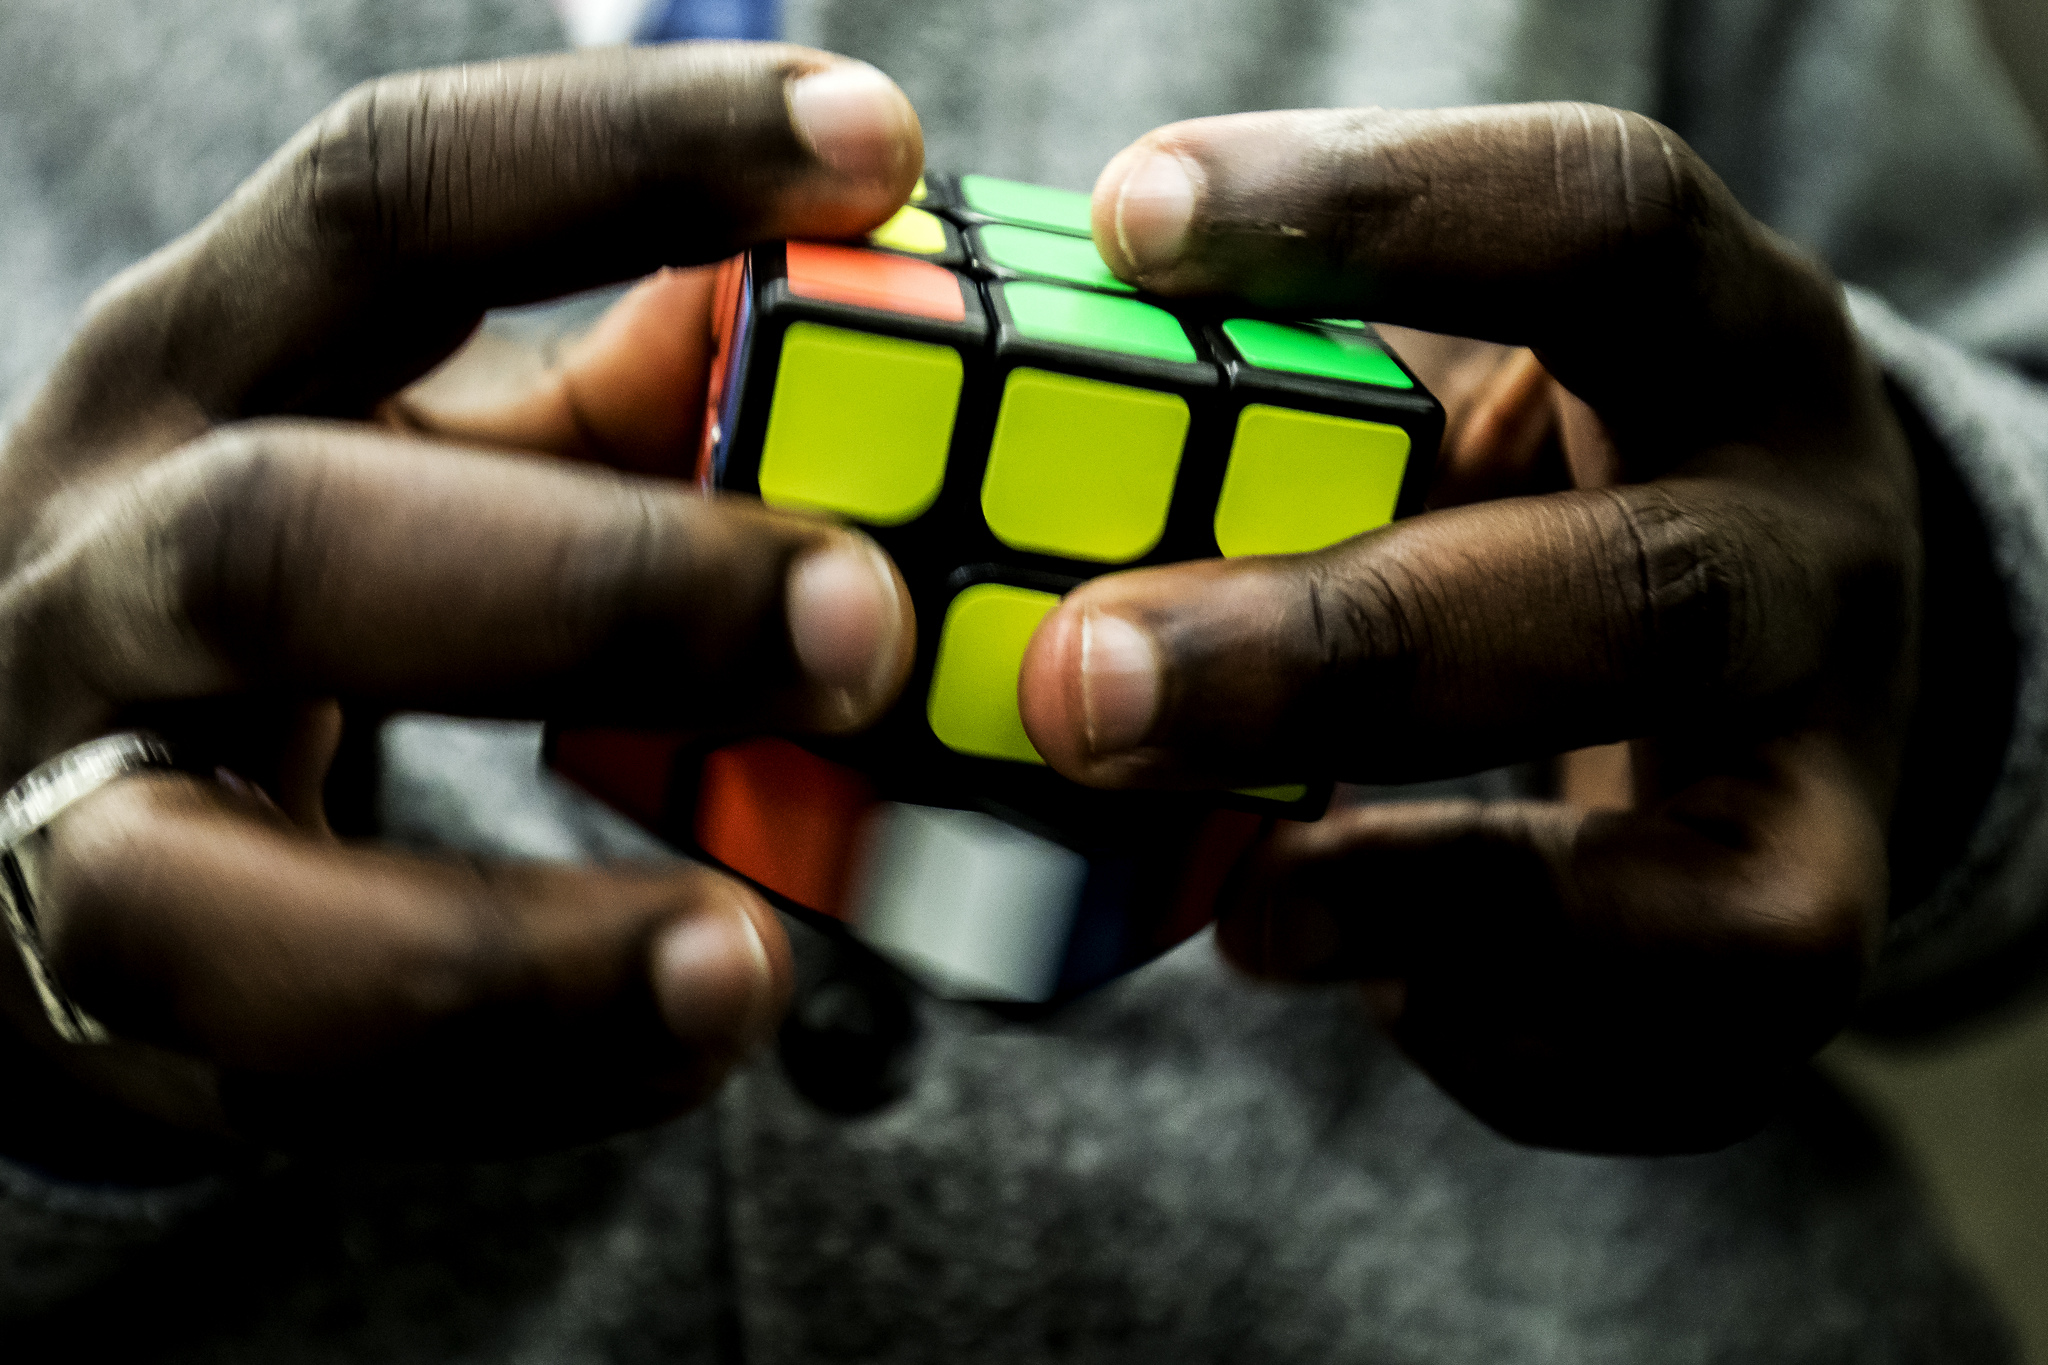 Close-up of hands rotating a Rubik's Cube